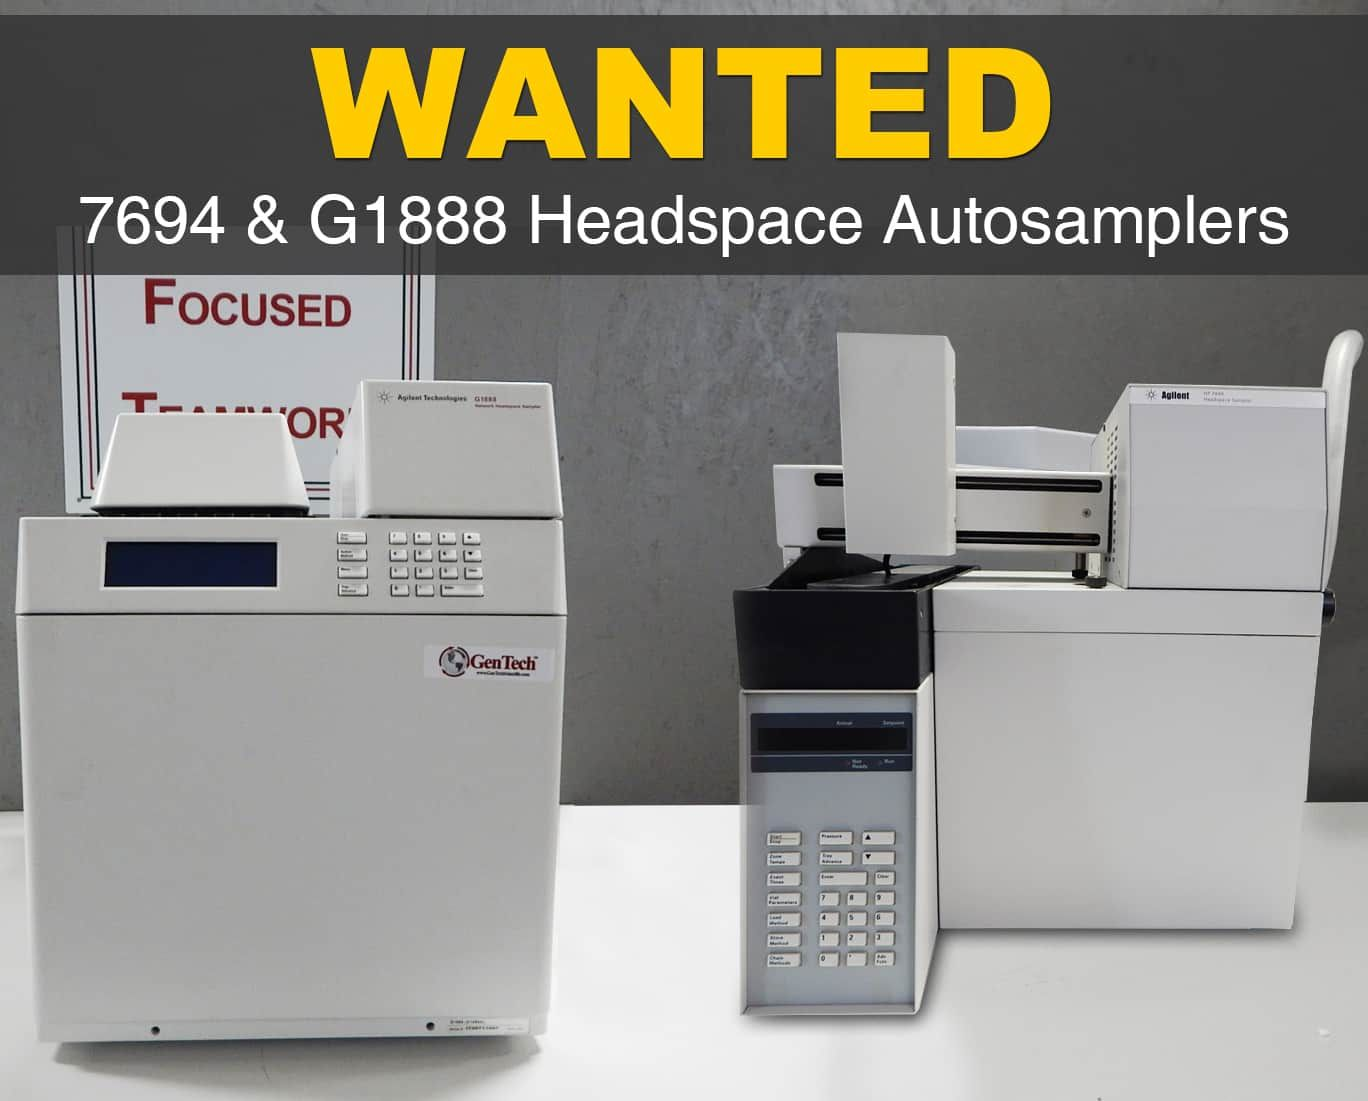 WANTED- 7694 & G1888 Headspace Autosamplers